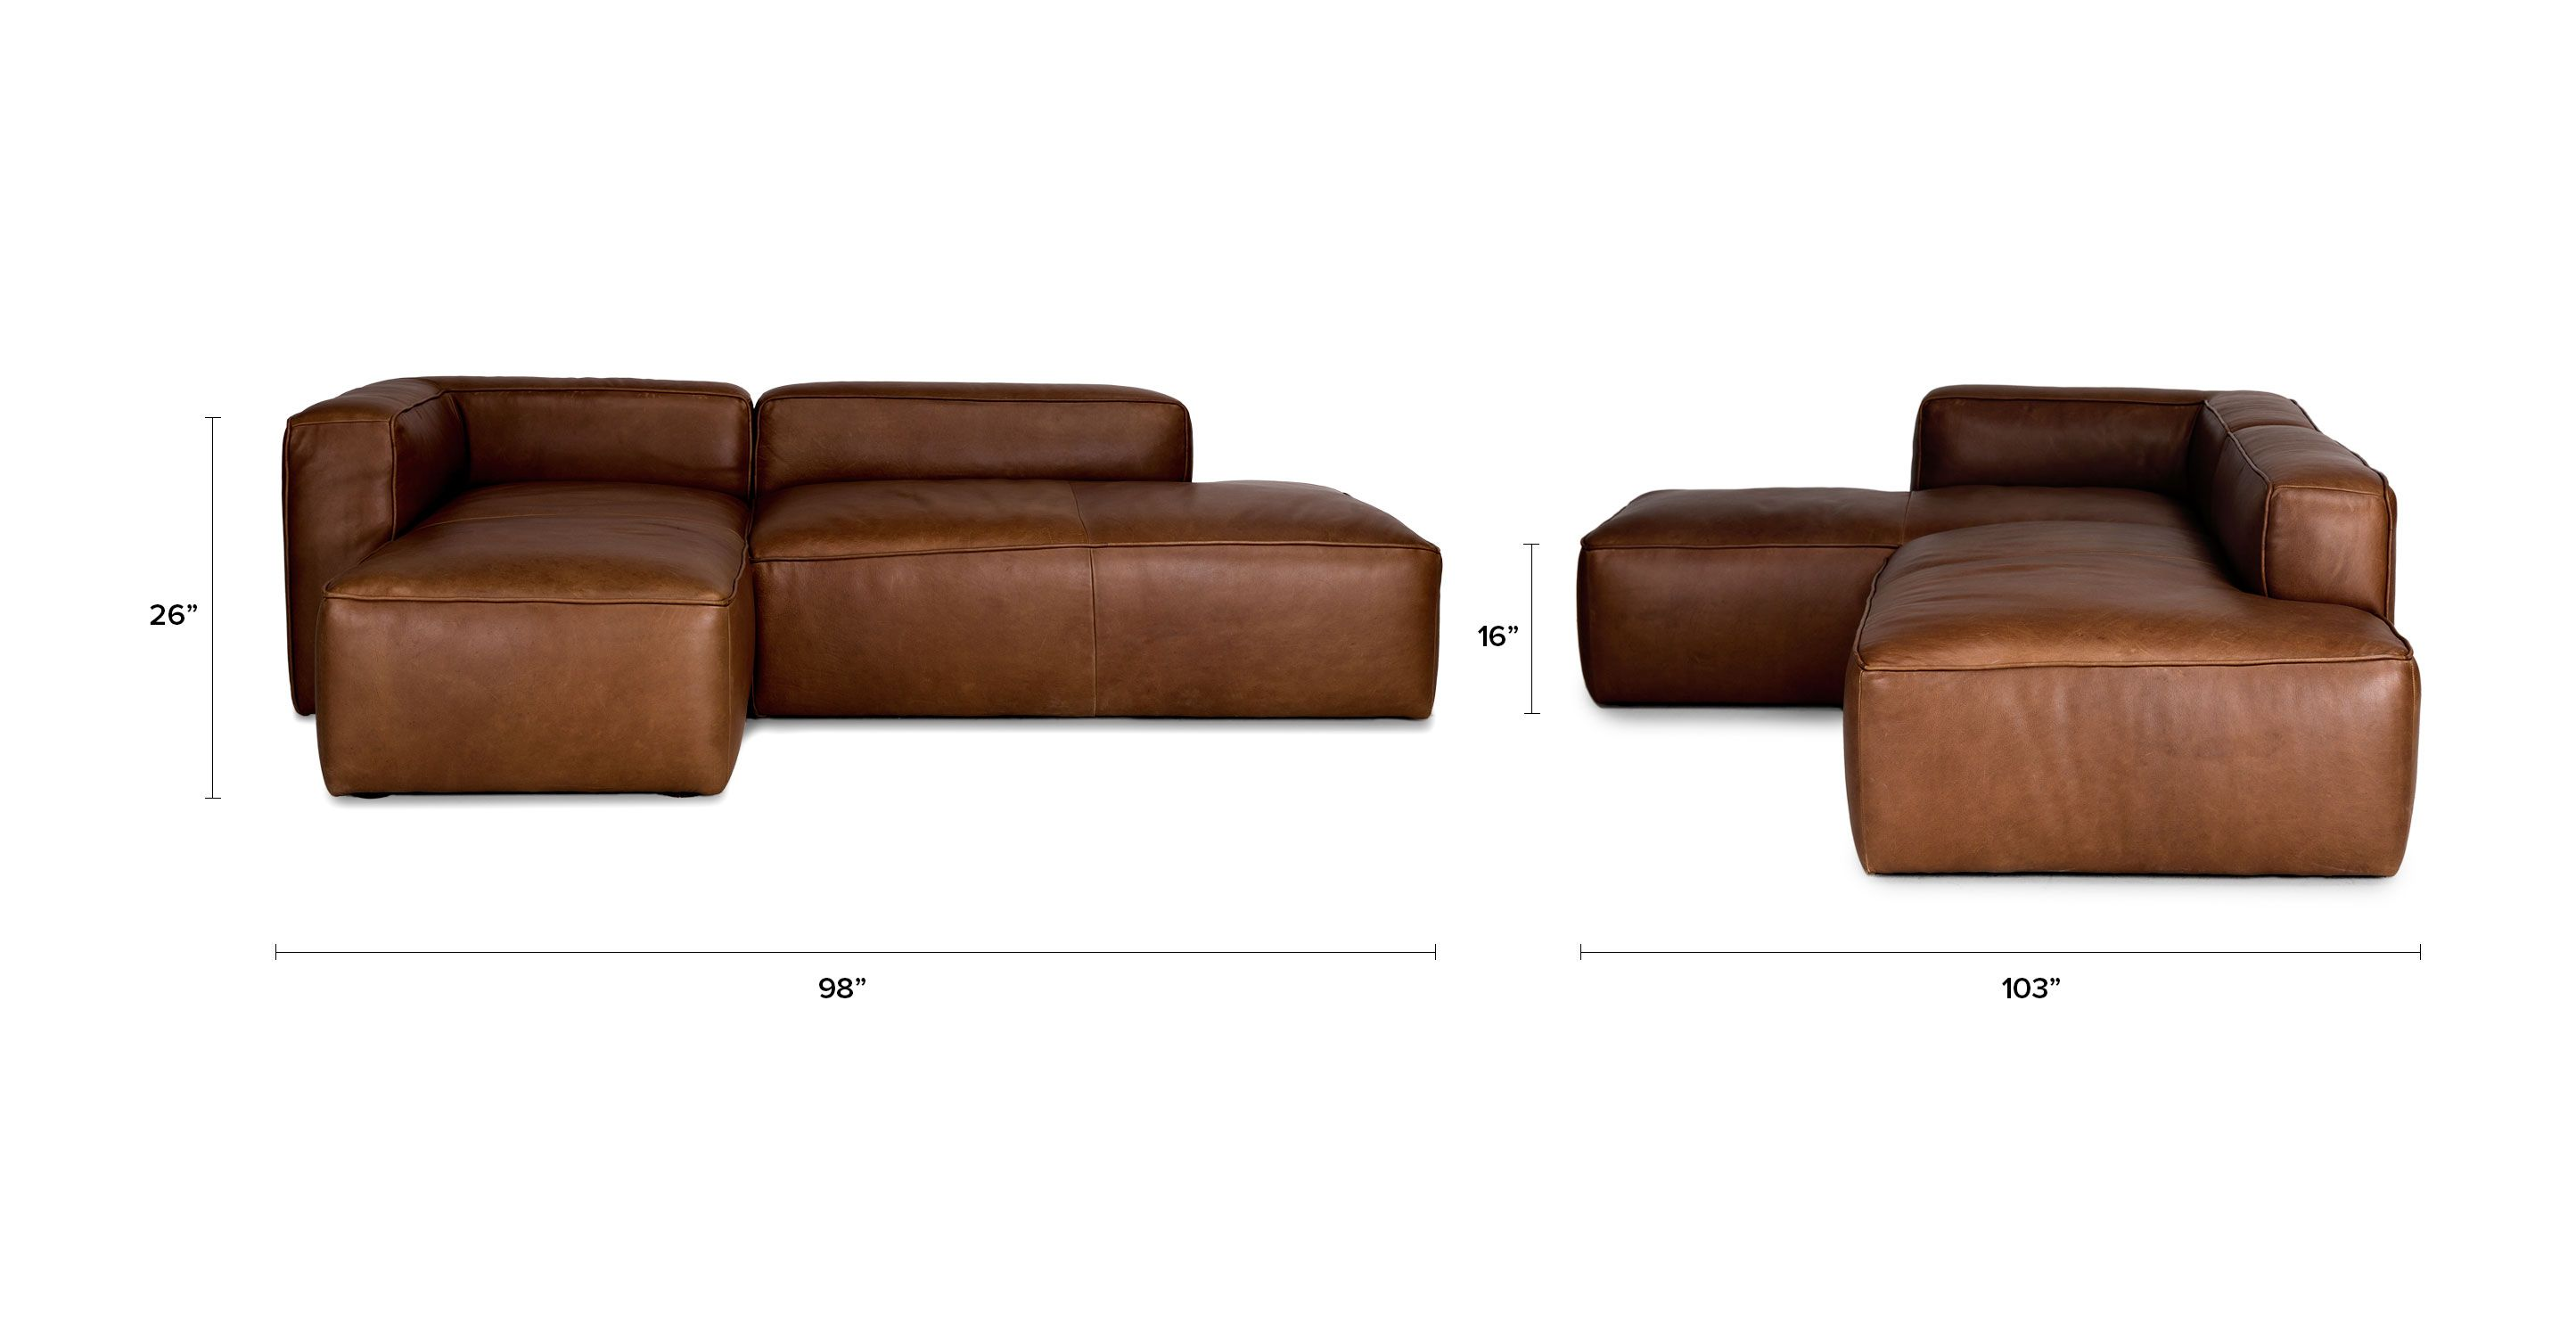 Mello Taos Brown Left Sectional Sofas Article